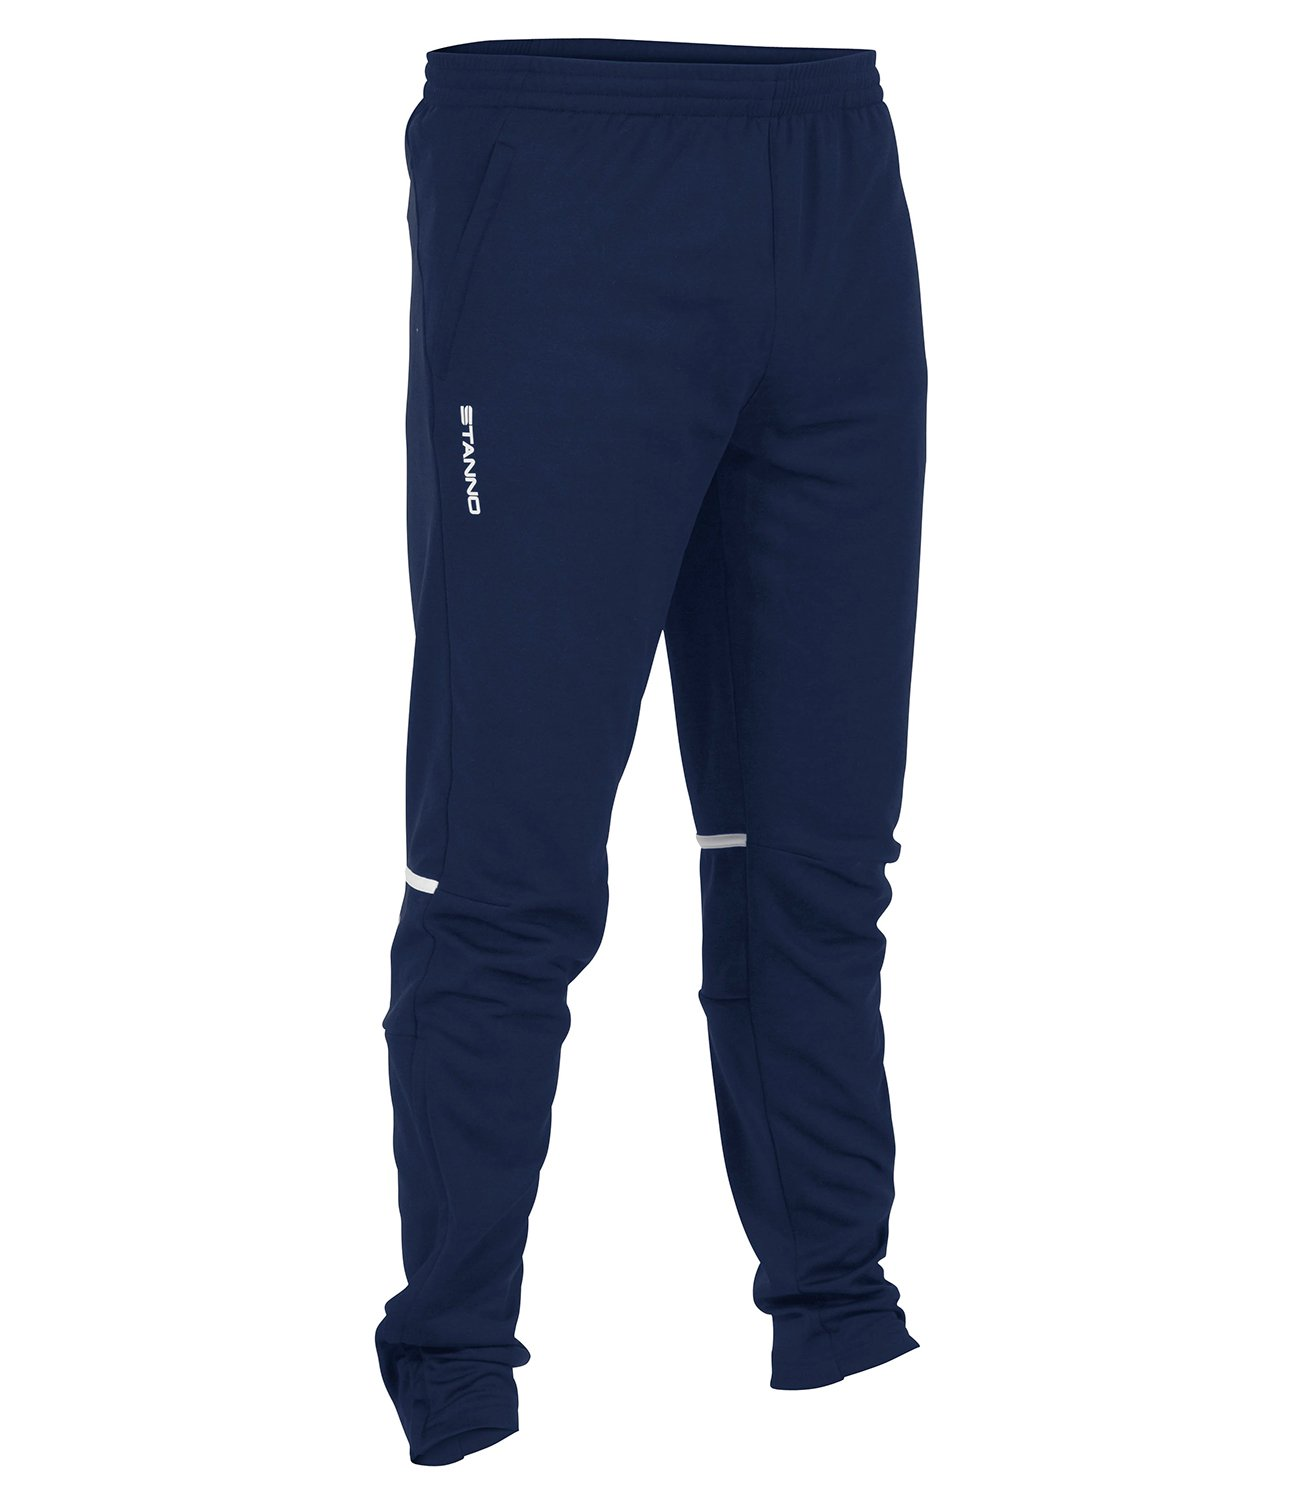 Stanno Stanno Forza Training Pant Black